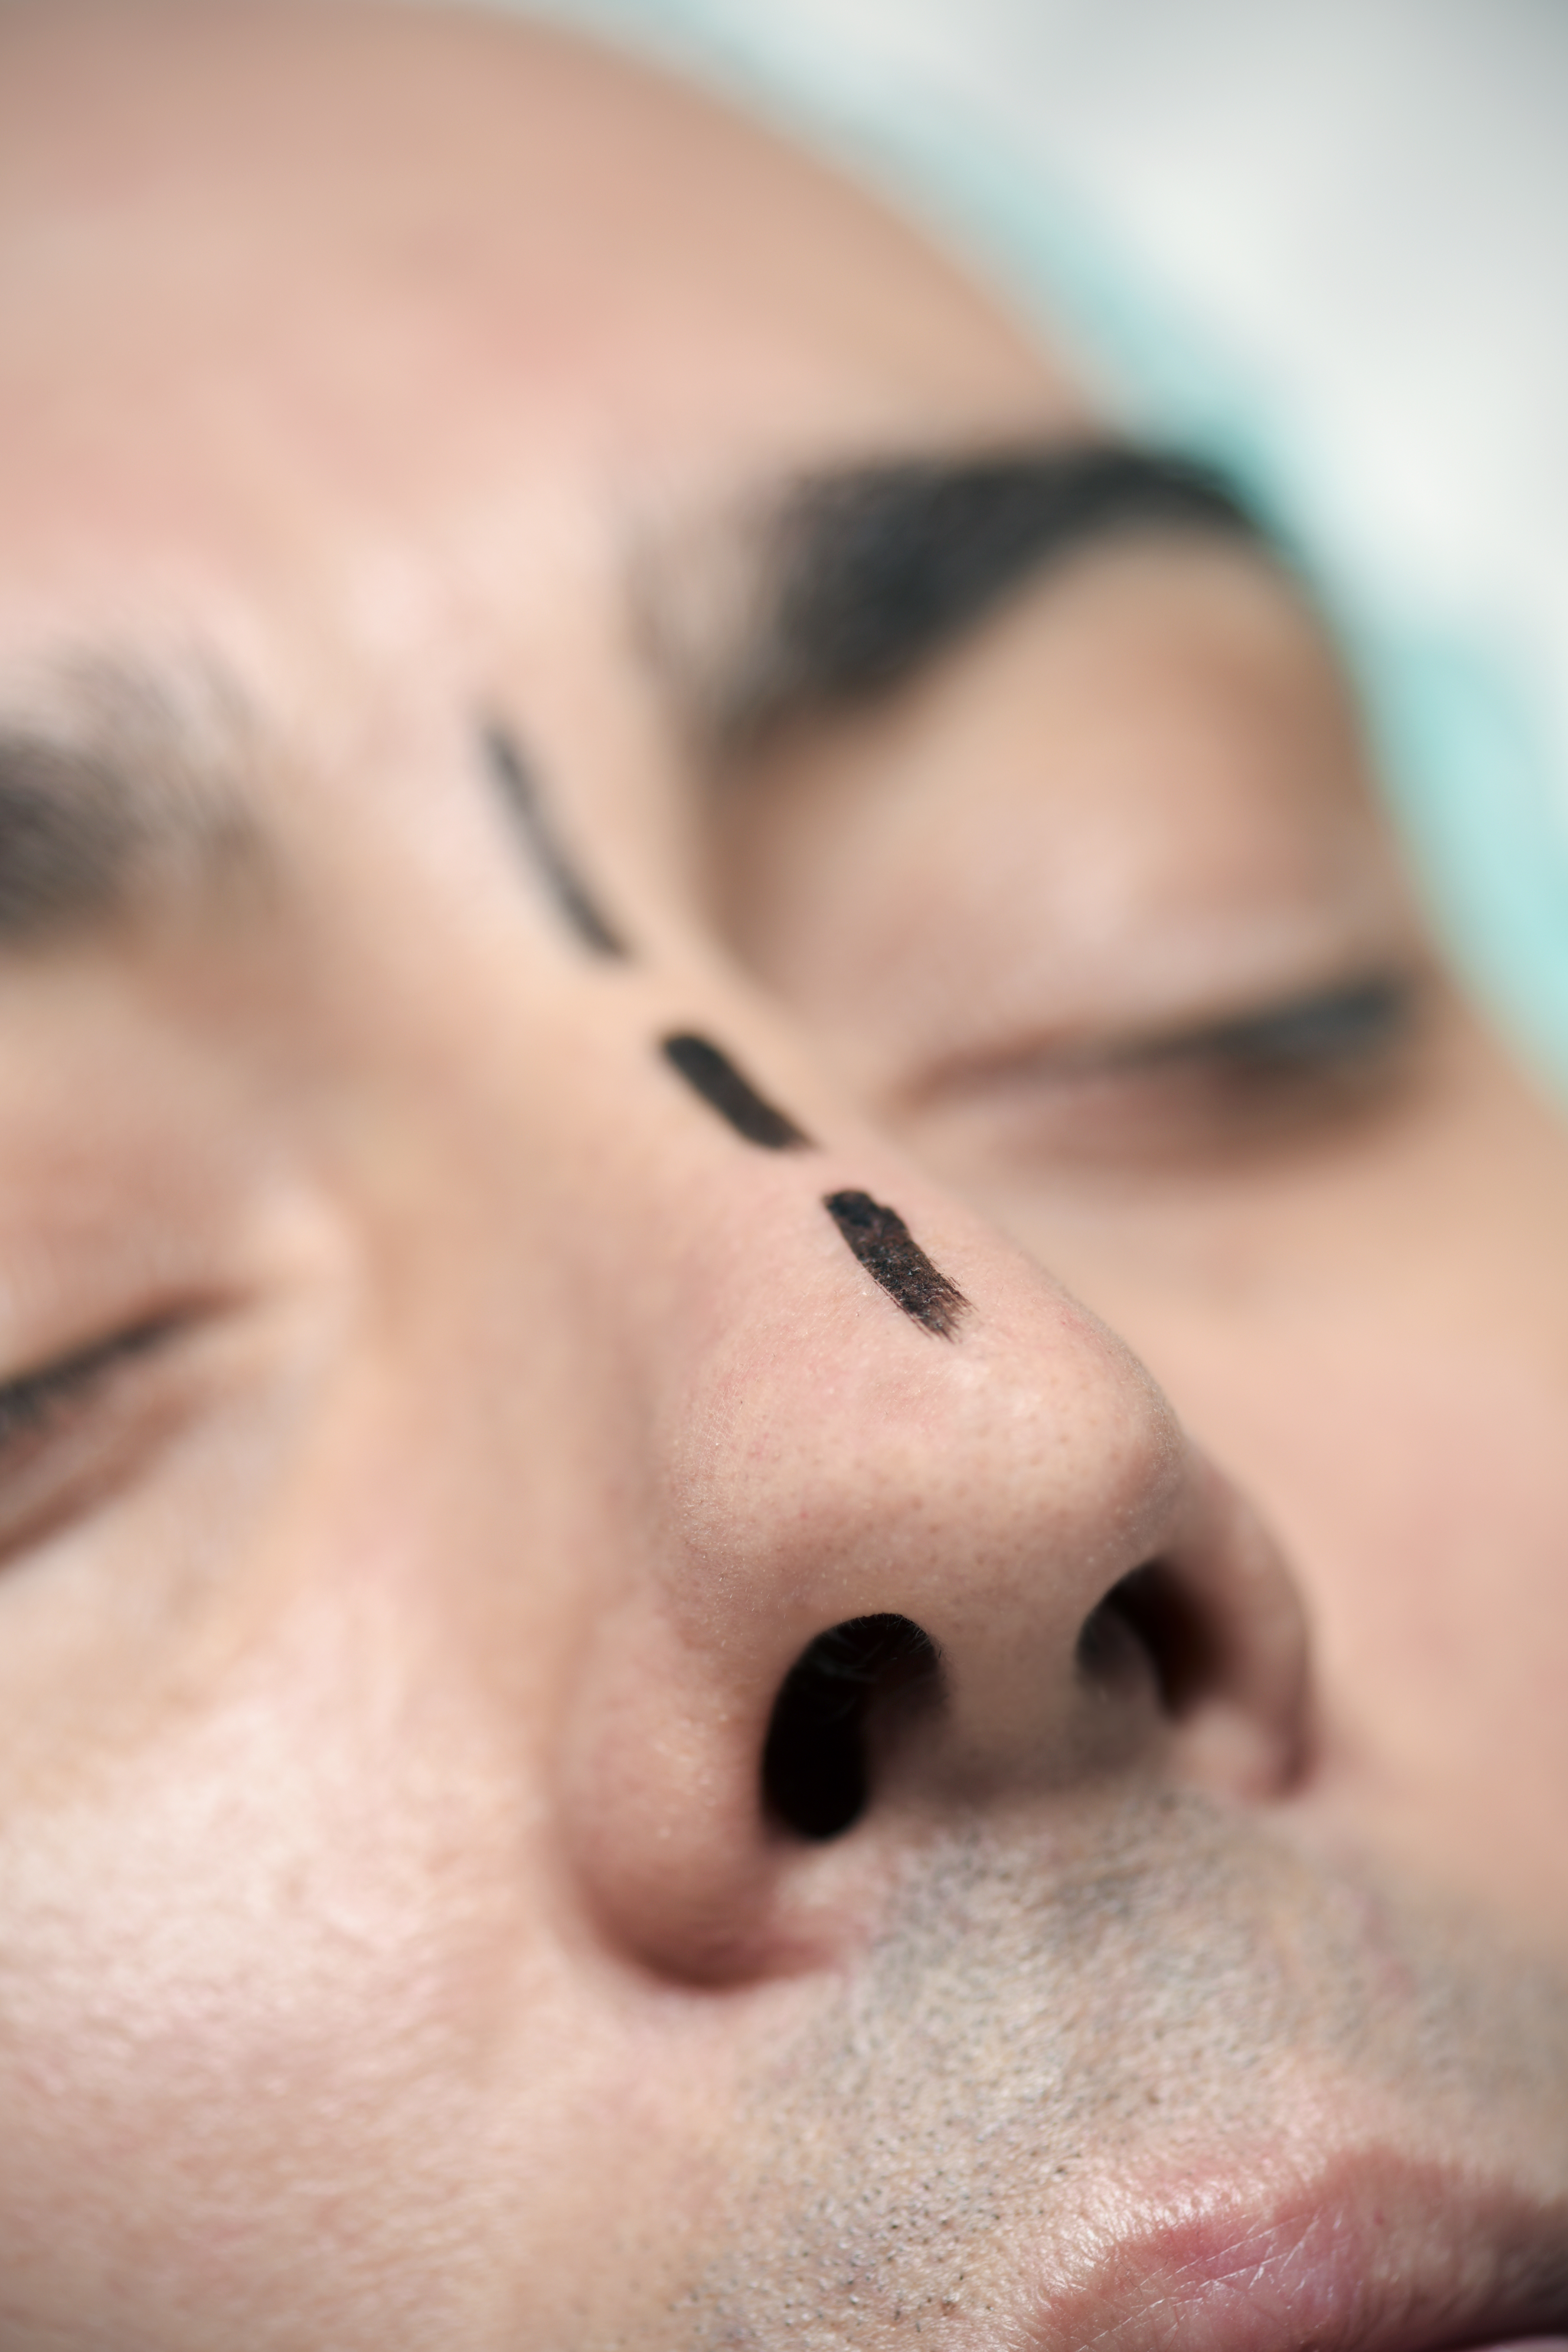 Patient's face marked for rhinoplasty